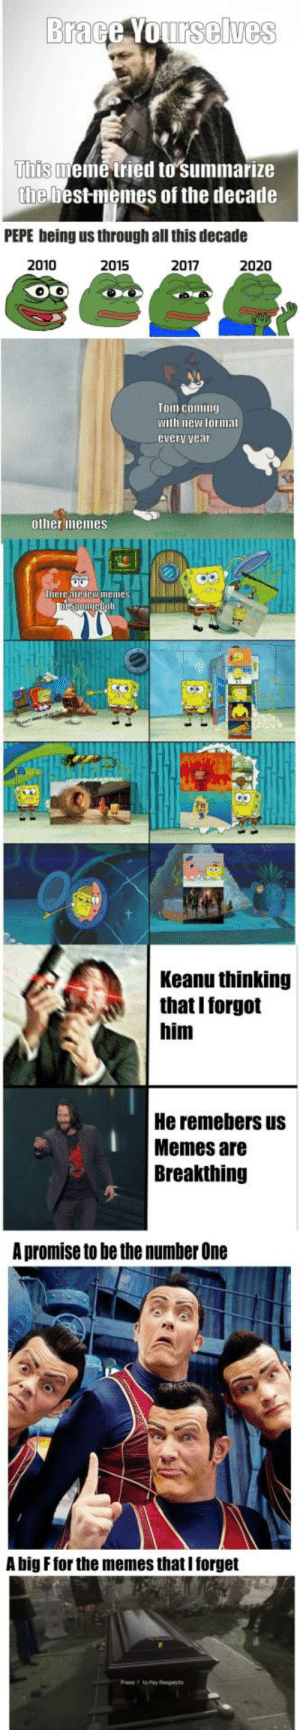 F for the ones I forgot by Renjhu MORE MEMES: Brace Yourselves  This meme tried to summarize  the best memes of the decade  PEPE being us through all this decade  2010  2015  2017  2020  Tom coming  with new format  every vear  other memes  There are lew memes  nispongeBoh  Keanu thinking  that I forgot  him  He remebers us  Memes are  Breakthing  A promise to be the number One  A big F for the memes that I forget F for the ones I forgot by Renjhu MORE MEMES